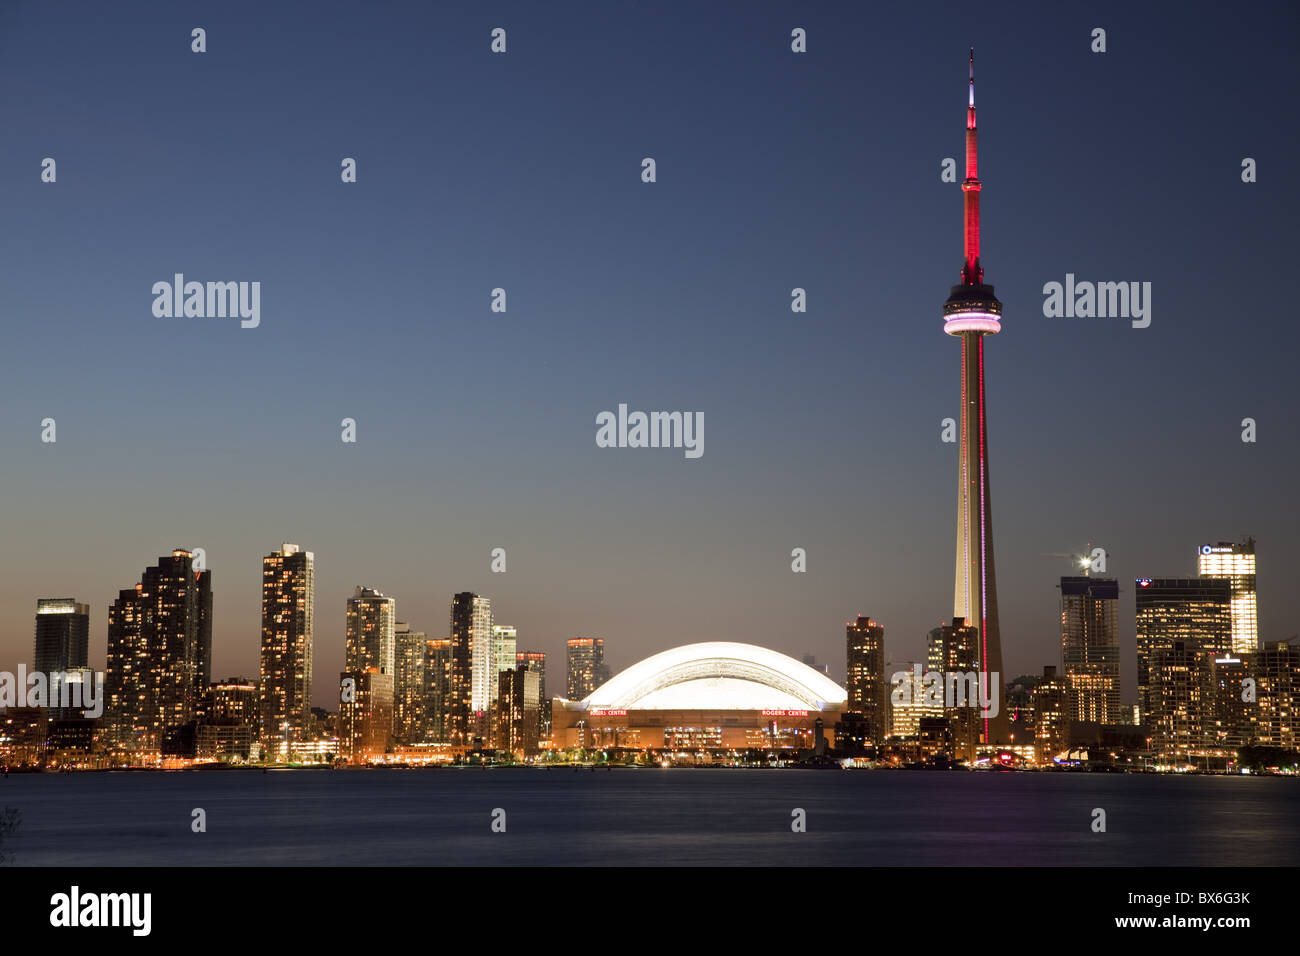 Skyline of city with CN Tower and Rogers Centre, previously The Skydome, Toronto, Ontario, Canada, North America - Stock Image